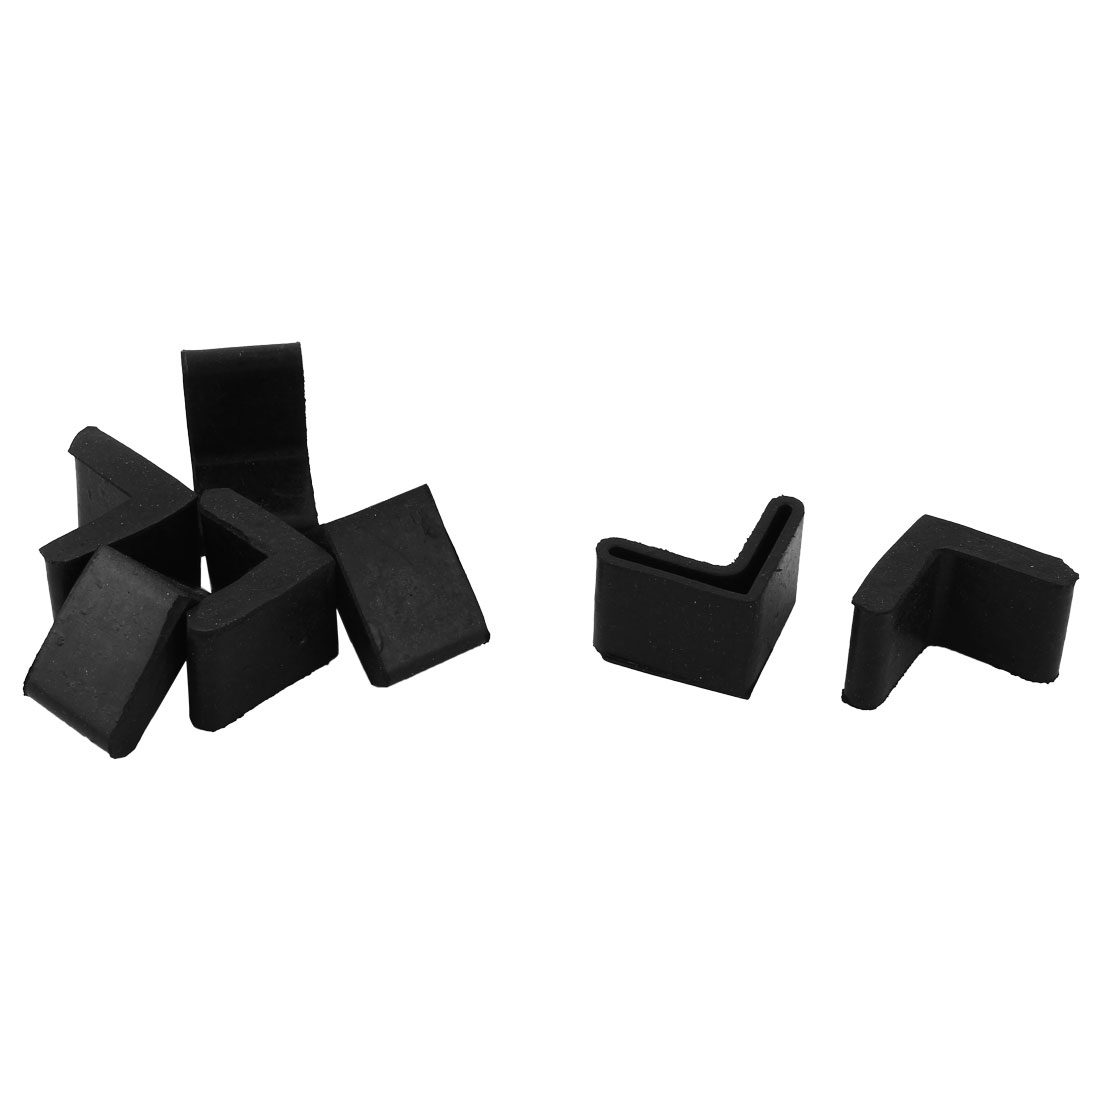 Home Rubber L Shape Furniture Foot Dirt Protector Cover Black 30mm x 30mm 7 Pcs